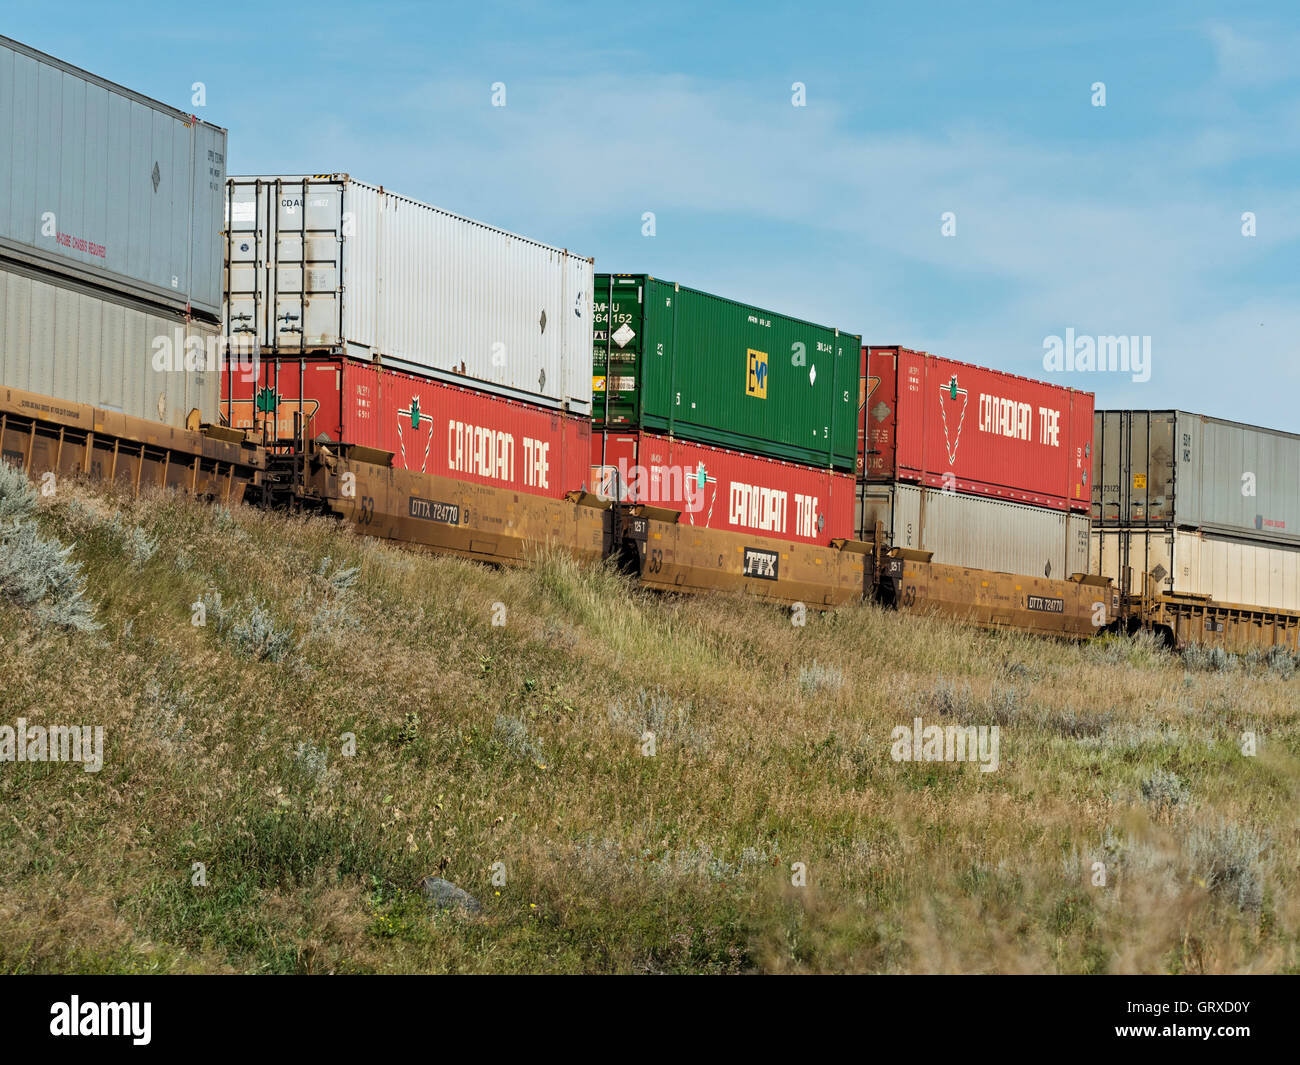 Intermodal containers on a Canadian Pacific Railway freight train, Medicine Hat, Alberta, Canada. - Stock Image